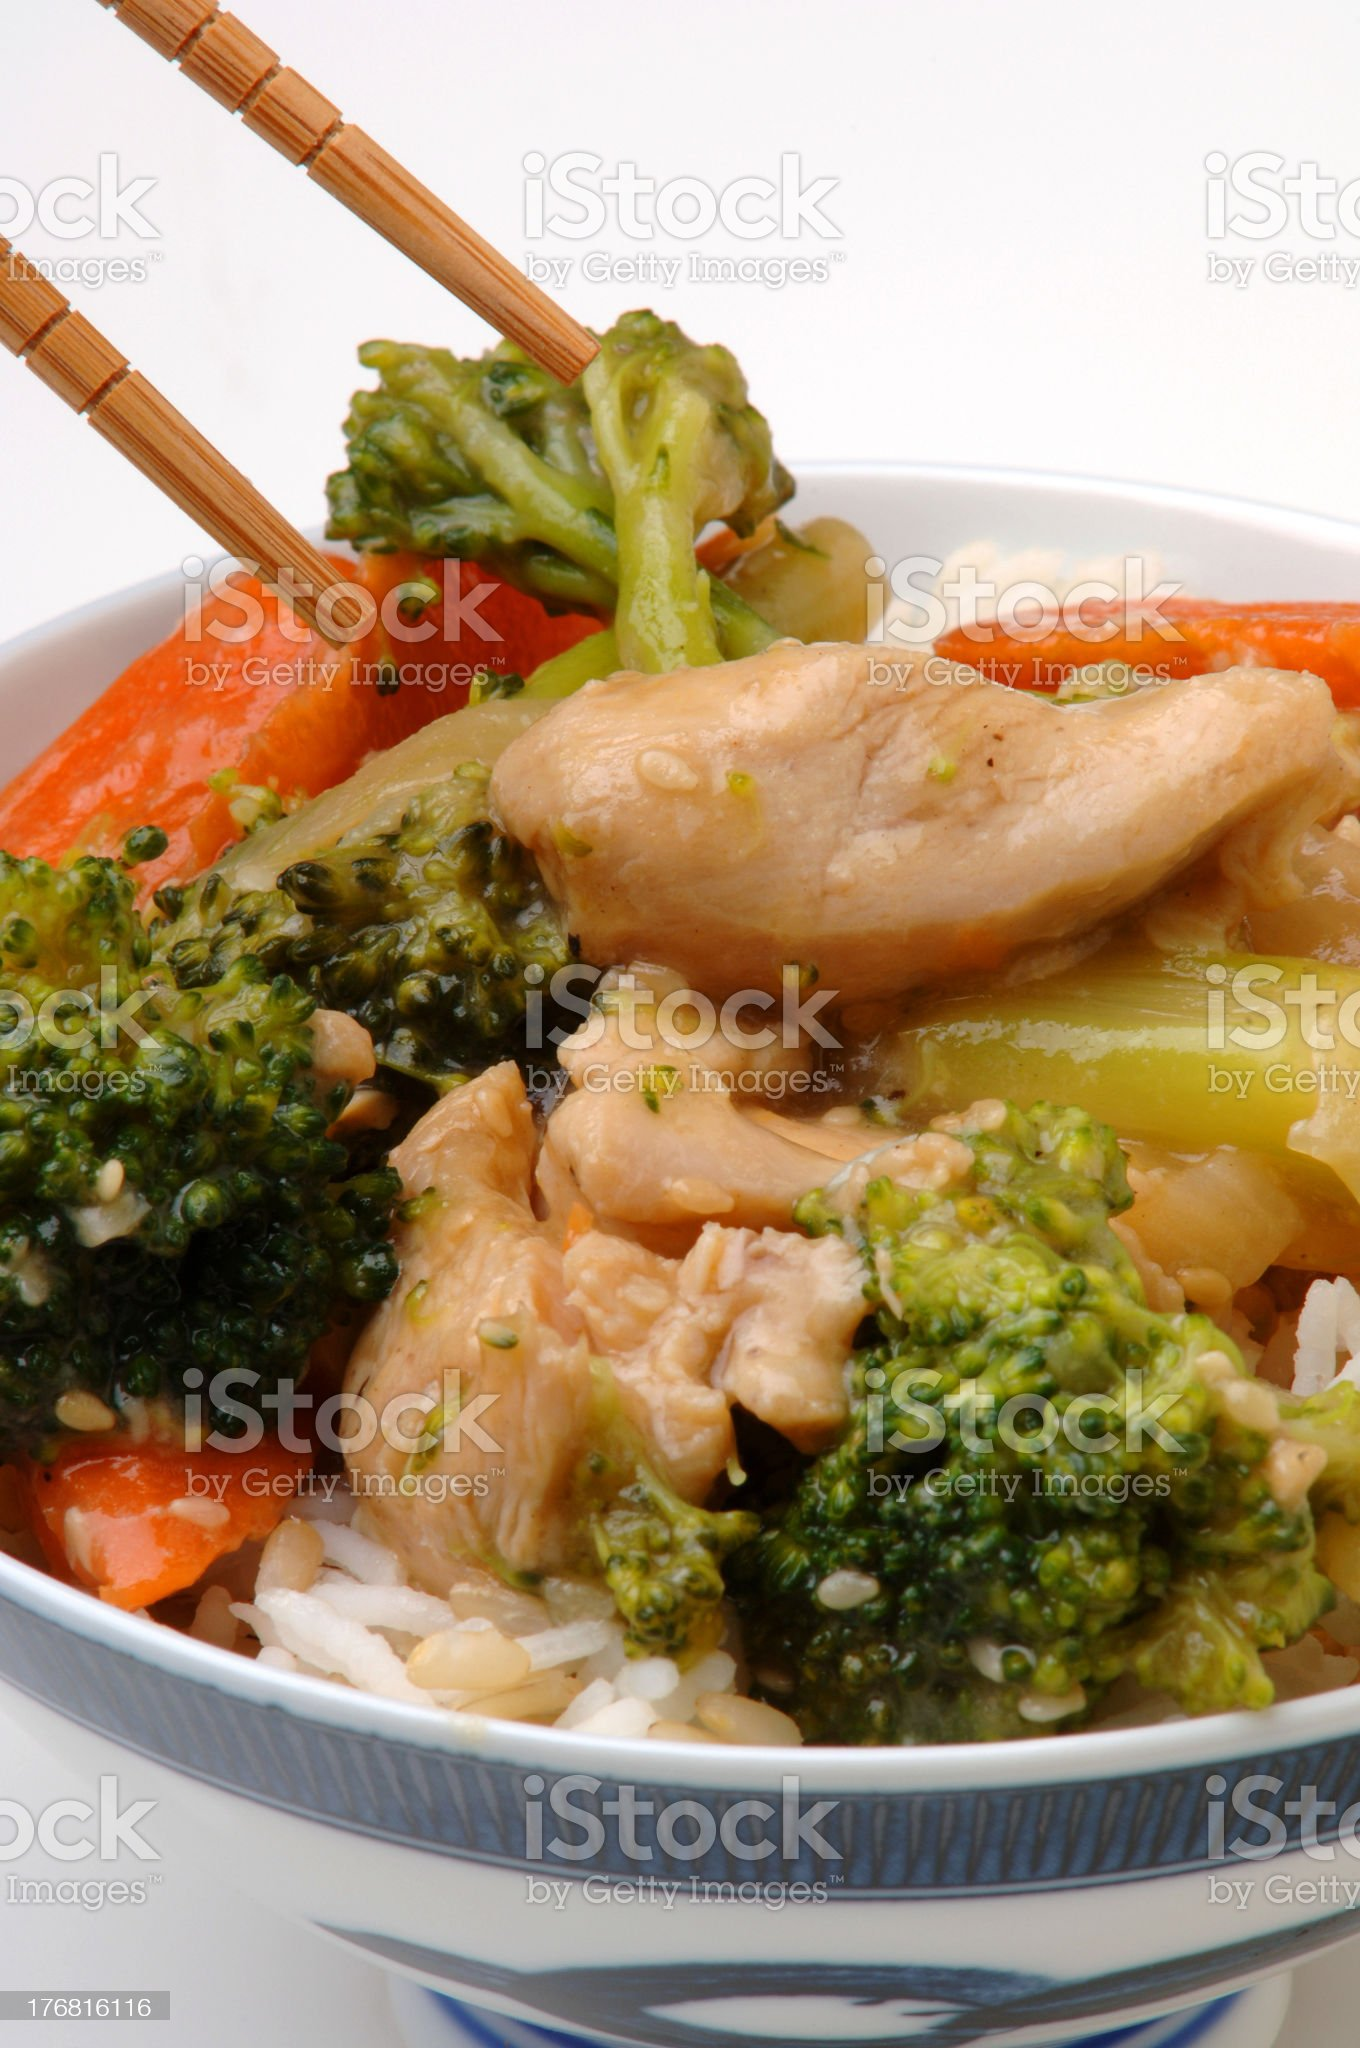 Bowl of Chinese/Japanese food royalty-free stock photo